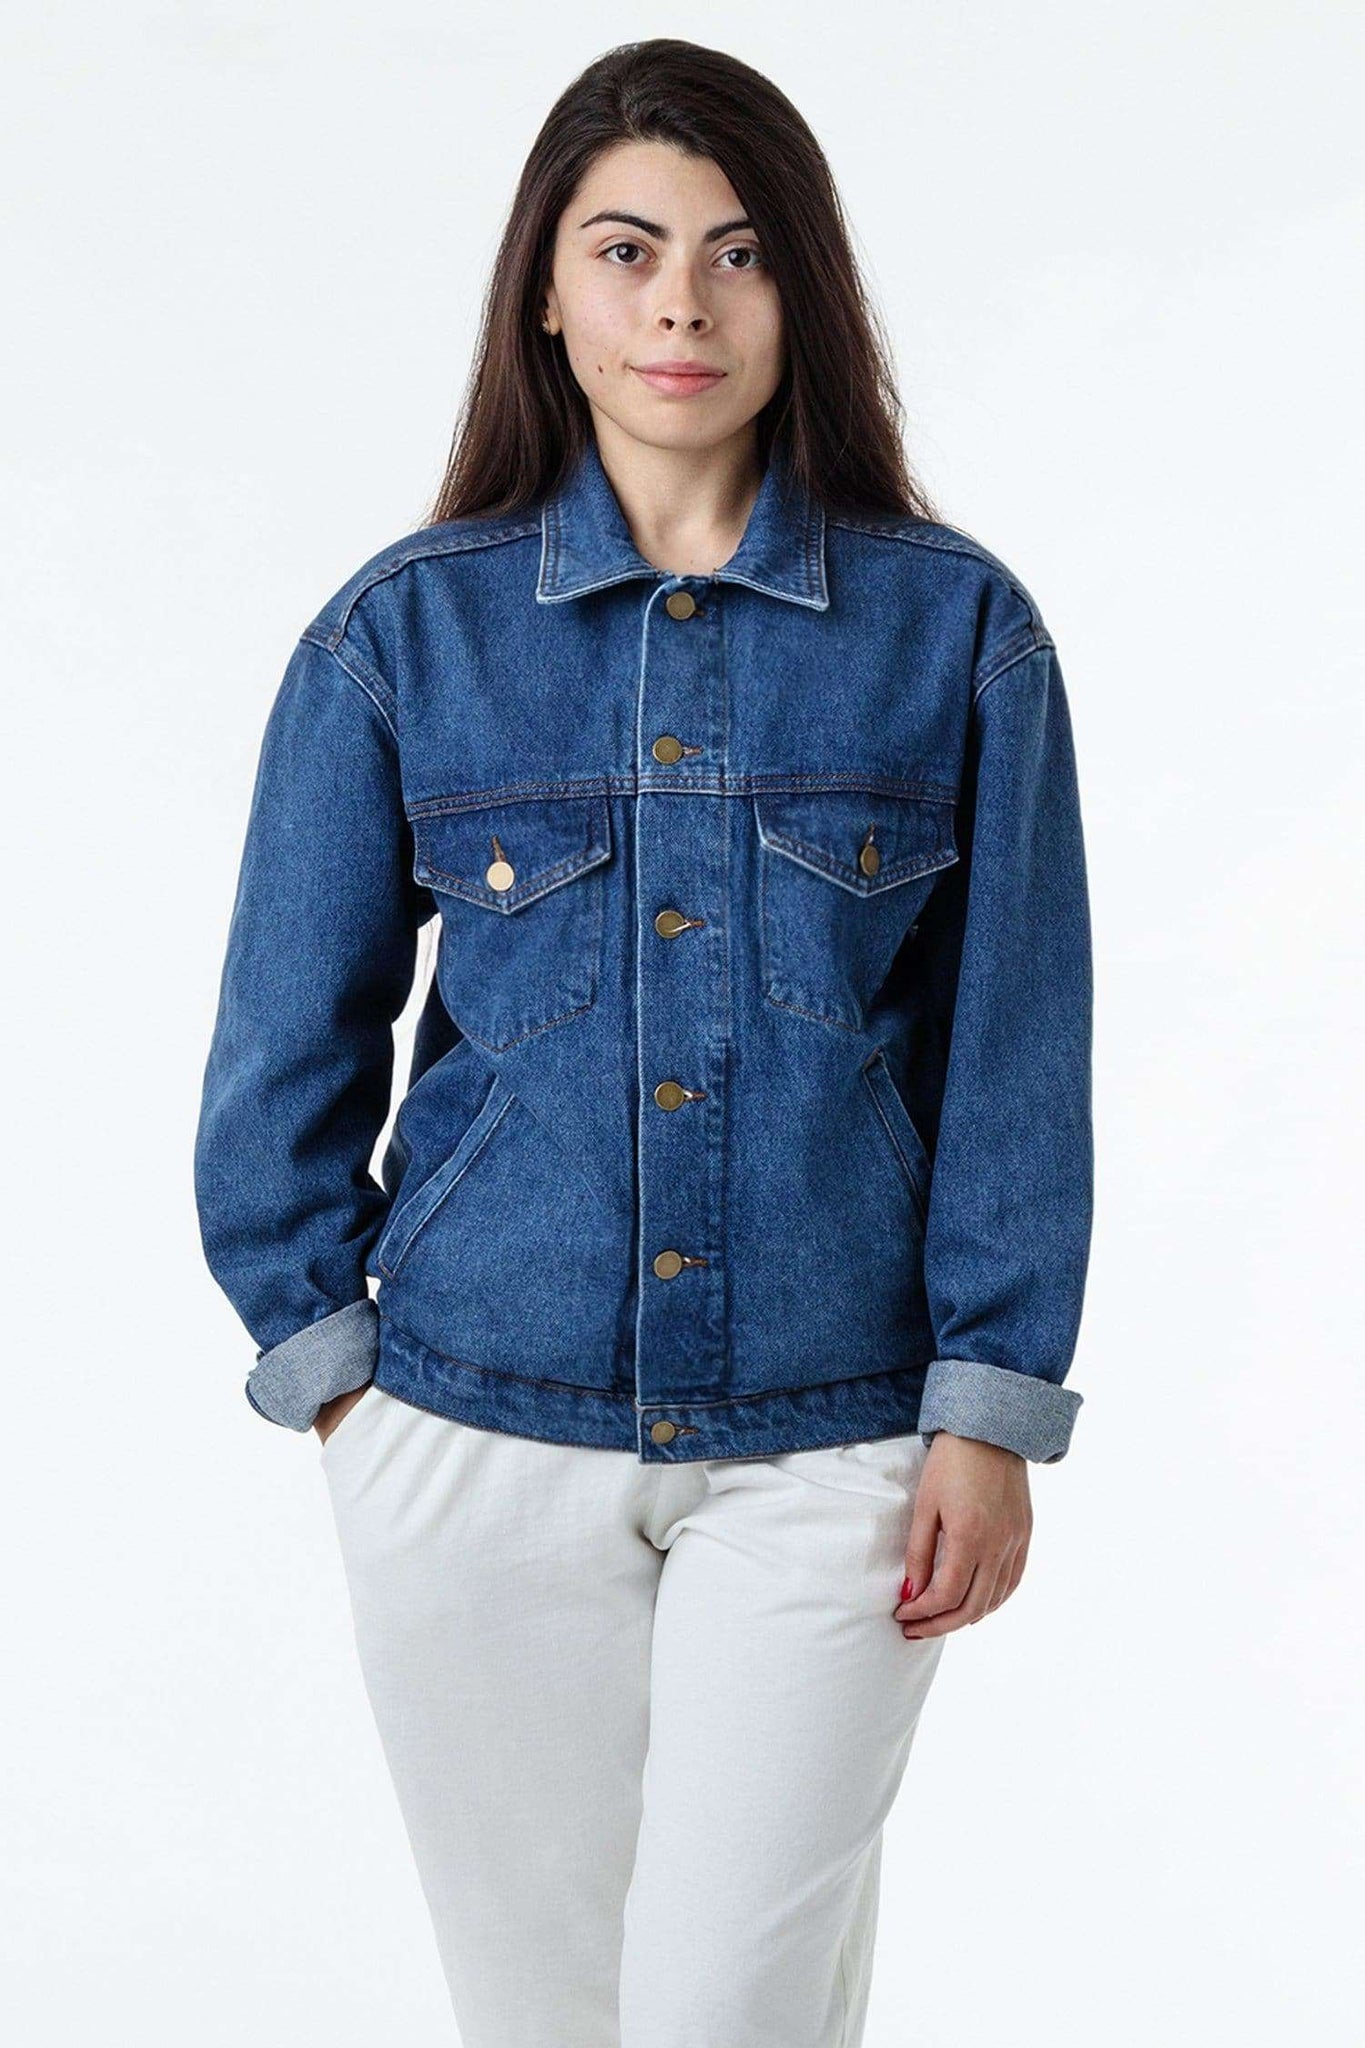 RDNM04 Unisex - Denim Jacket